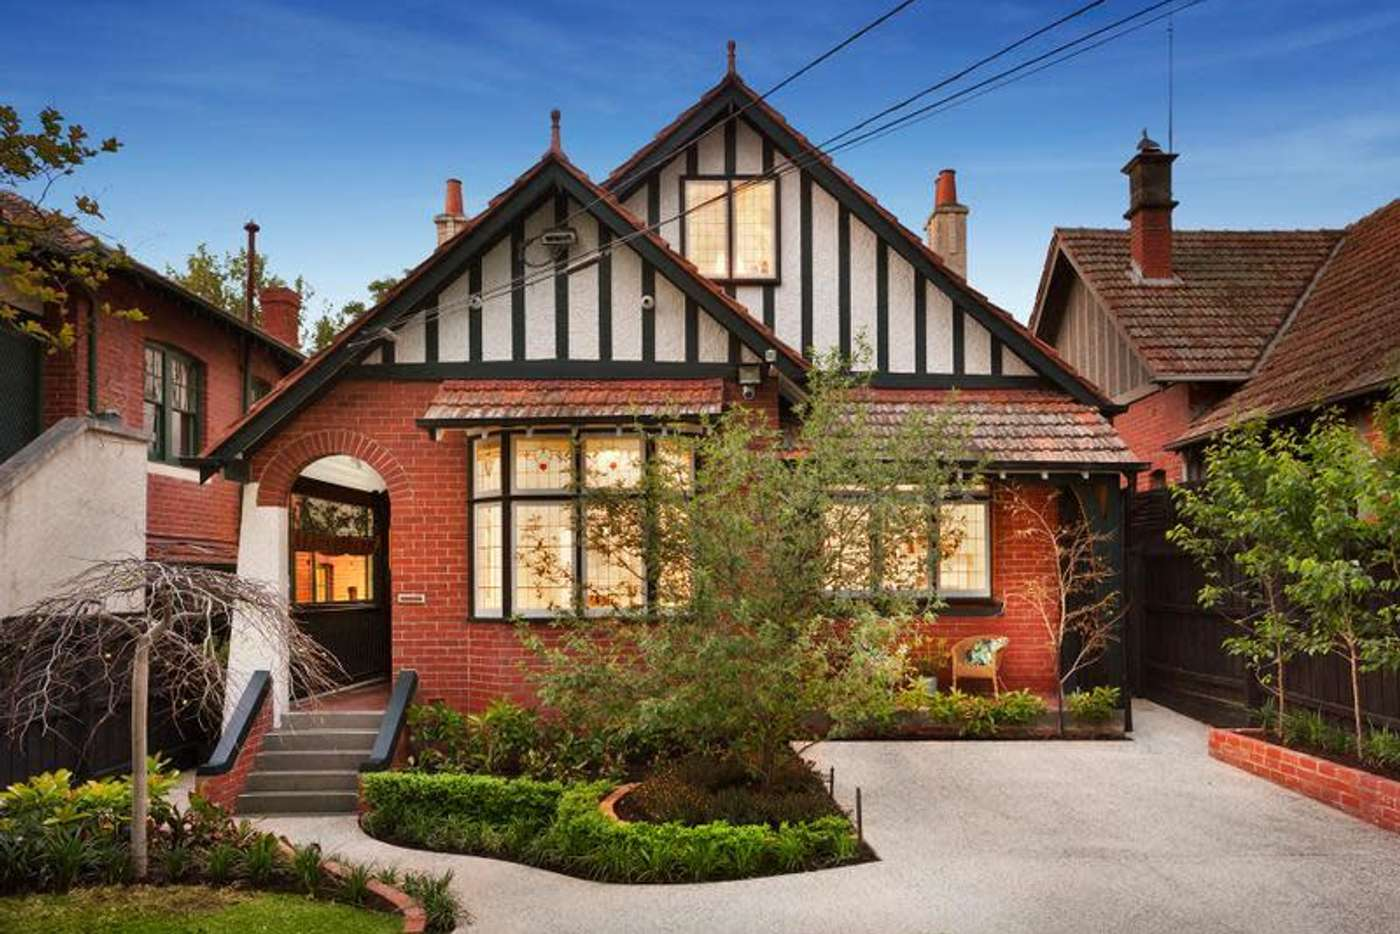 Main view of Homely house listing, 22 Burns Street, Elwood VIC 3184